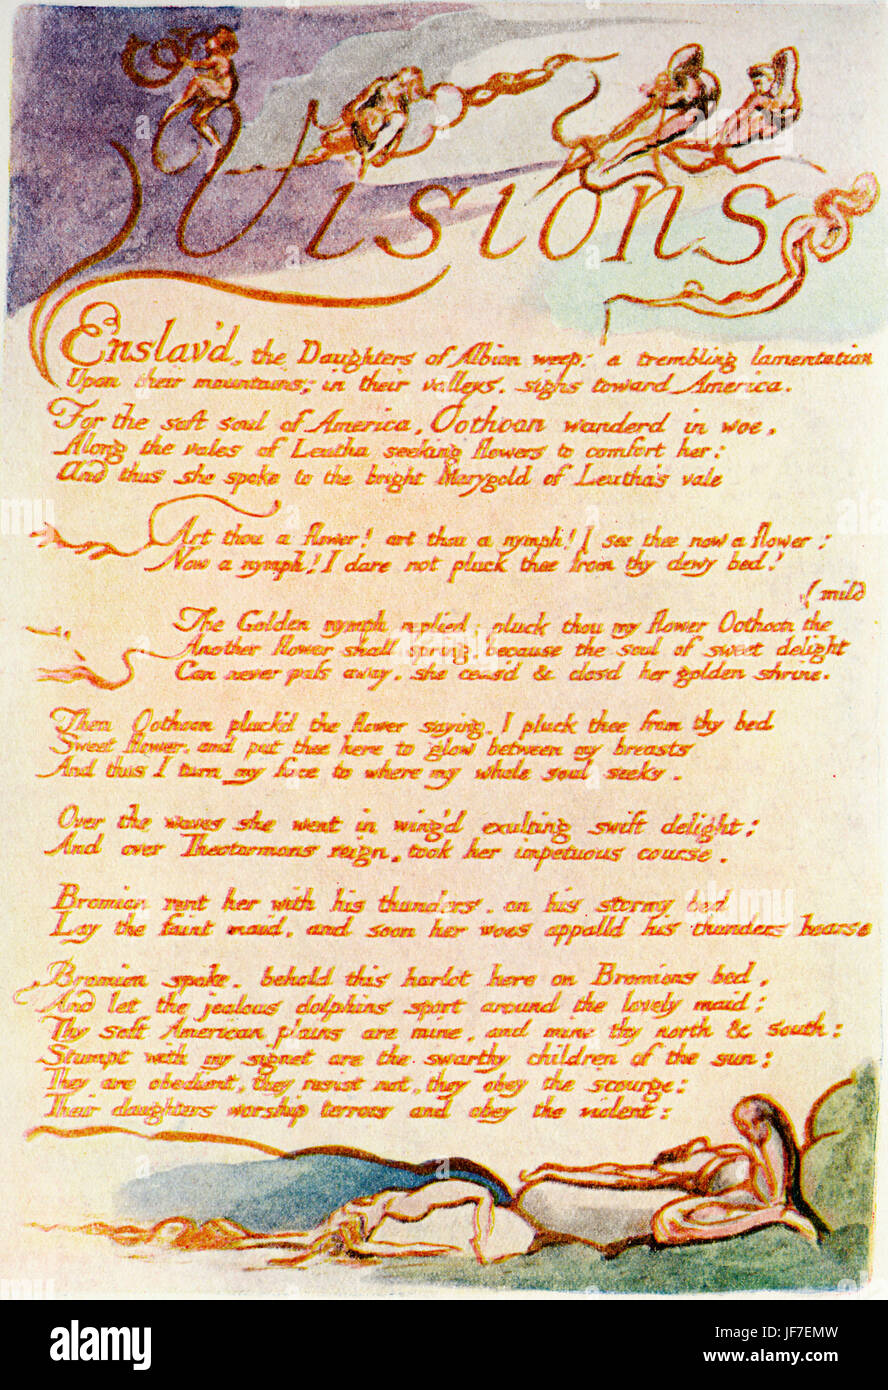 William Blake 's illustration for his poem Visions of the Daughters of Albion (1793). Visions, Opening Verse. - Stock Image